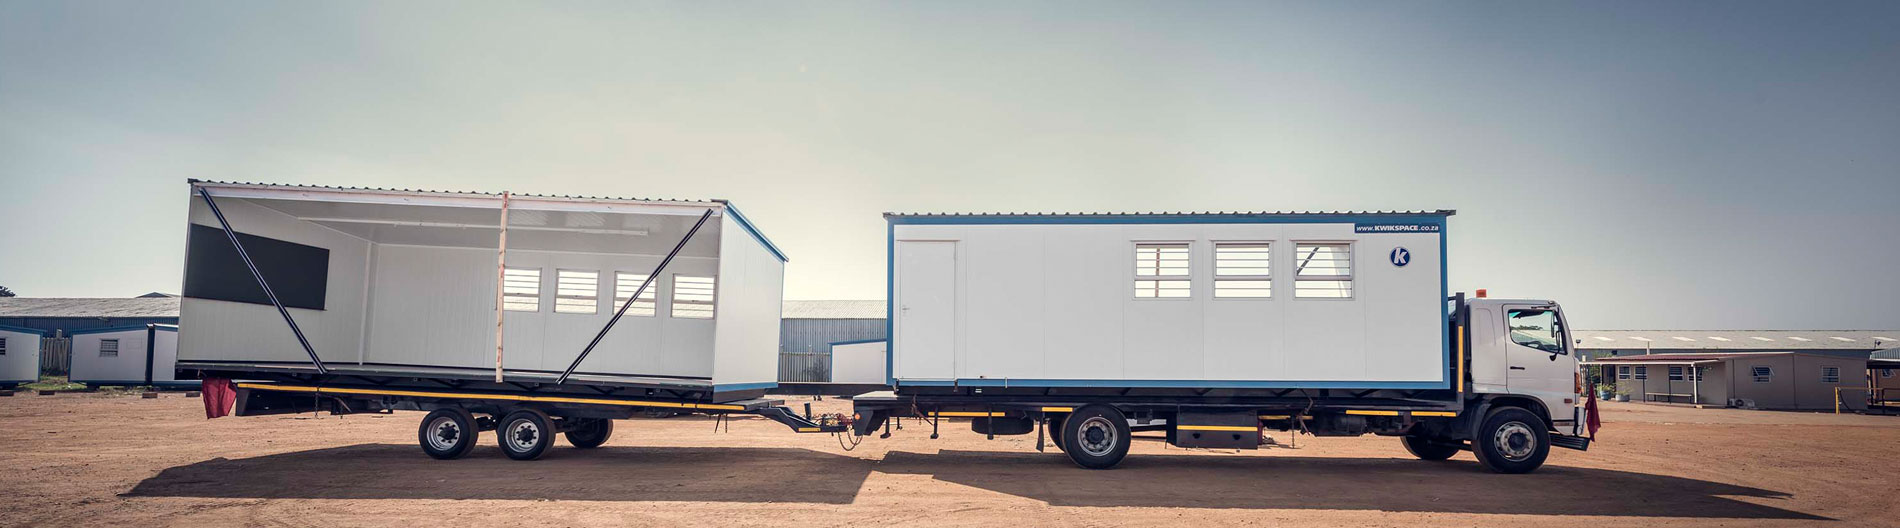 Interlocking panels and interlocking panel systems turns single-wide units into double-wide units easily and quickly. Kwikspace is a manufacturer of prefabricated modular units